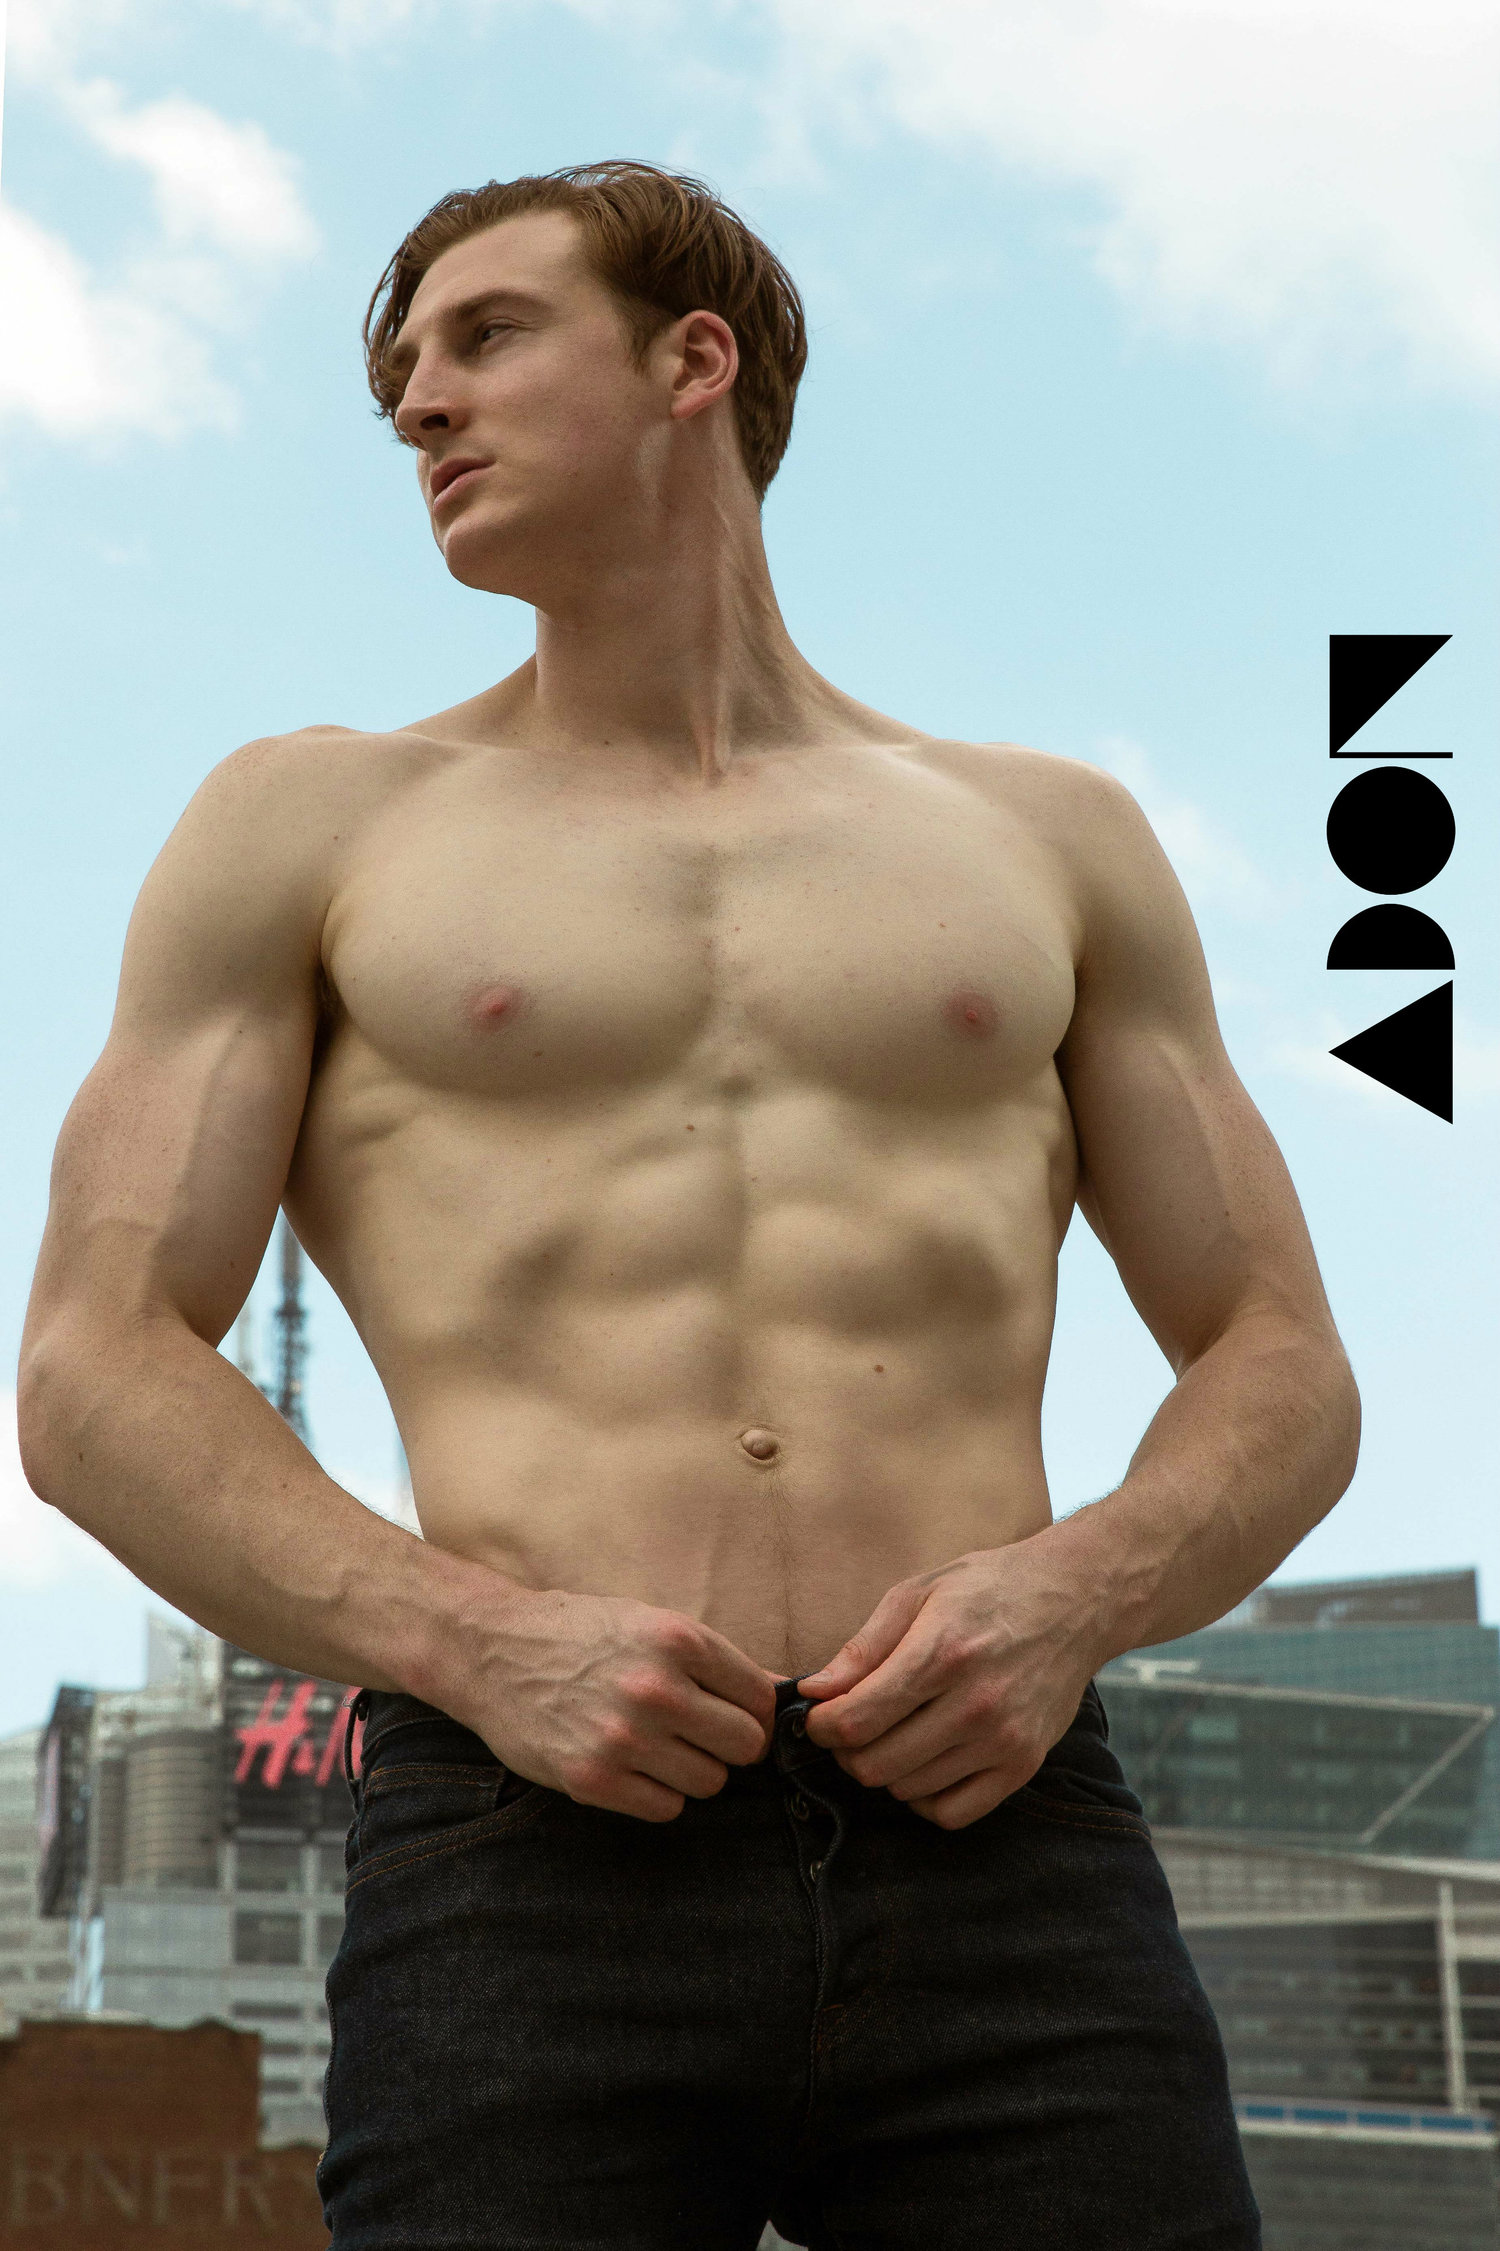 Adon Exclusive: Model Mike Vona By West Phillips